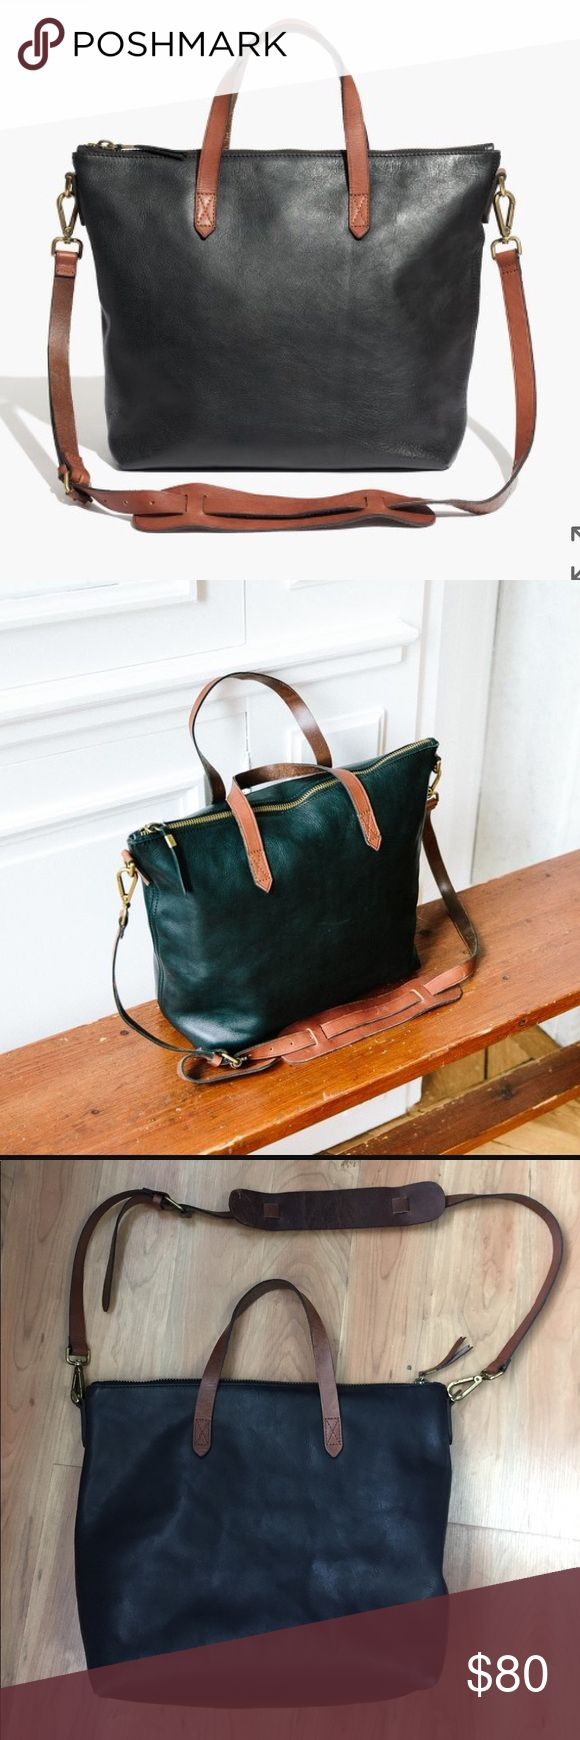 """Madewell Transport Satchel Adorable and very functional black leather bag with cognac details and straps. 11 4/5""""H x 15 2/5""""W (at top), 11 3/4""""W (at base) x 5 1/2""""D. 18"""" removable strap. Good condition- definitely some wear and minor scratches as seen in pictures but still a lot of life left! Madewell Bags"""